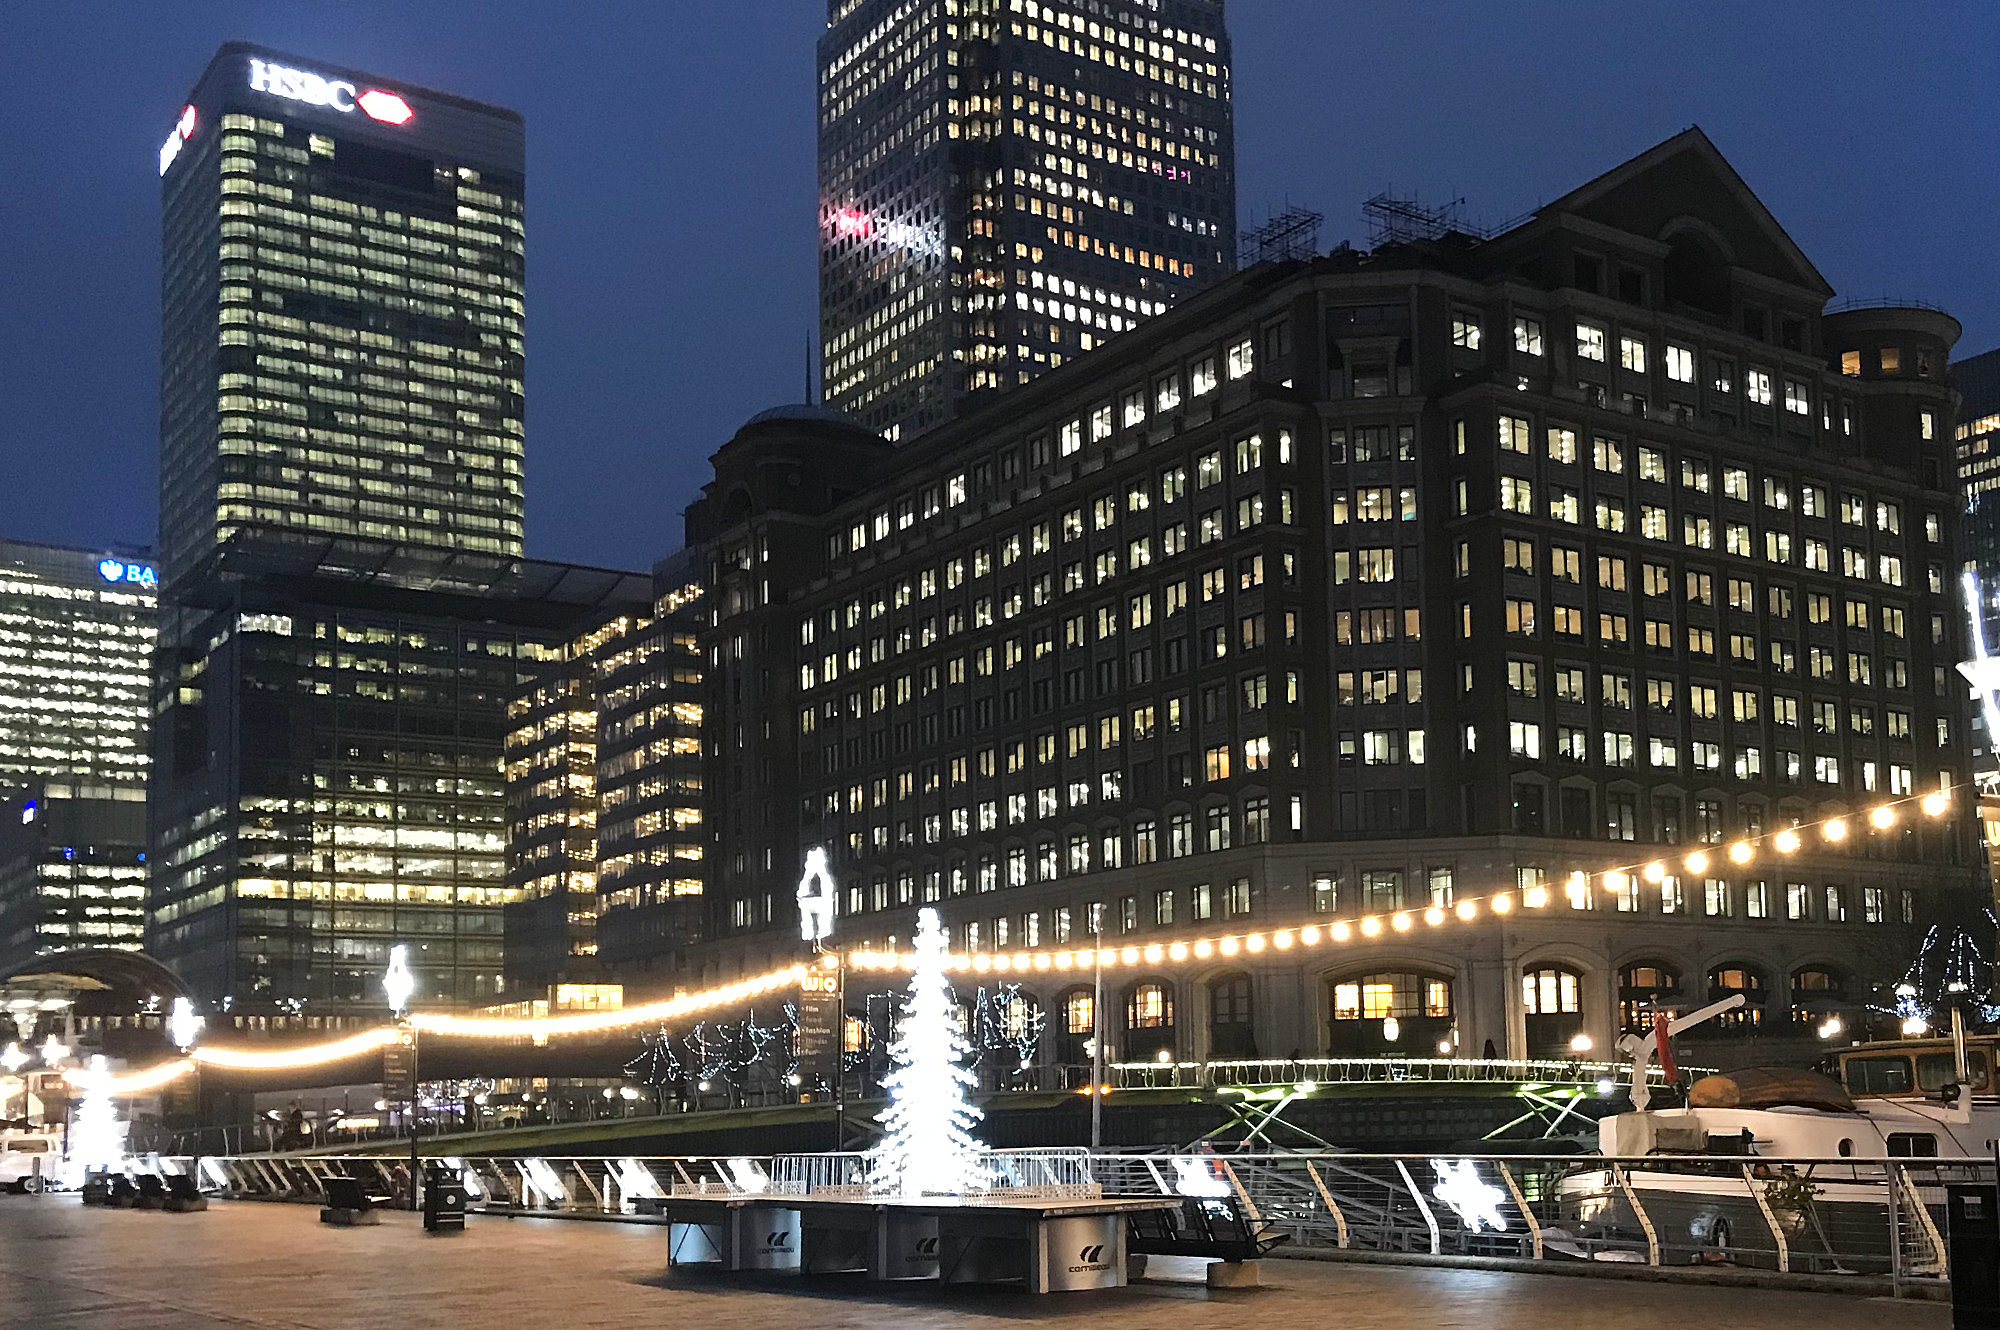 Cozens UK - Canary Wharf Christmas Lighting Installation and Maintenance